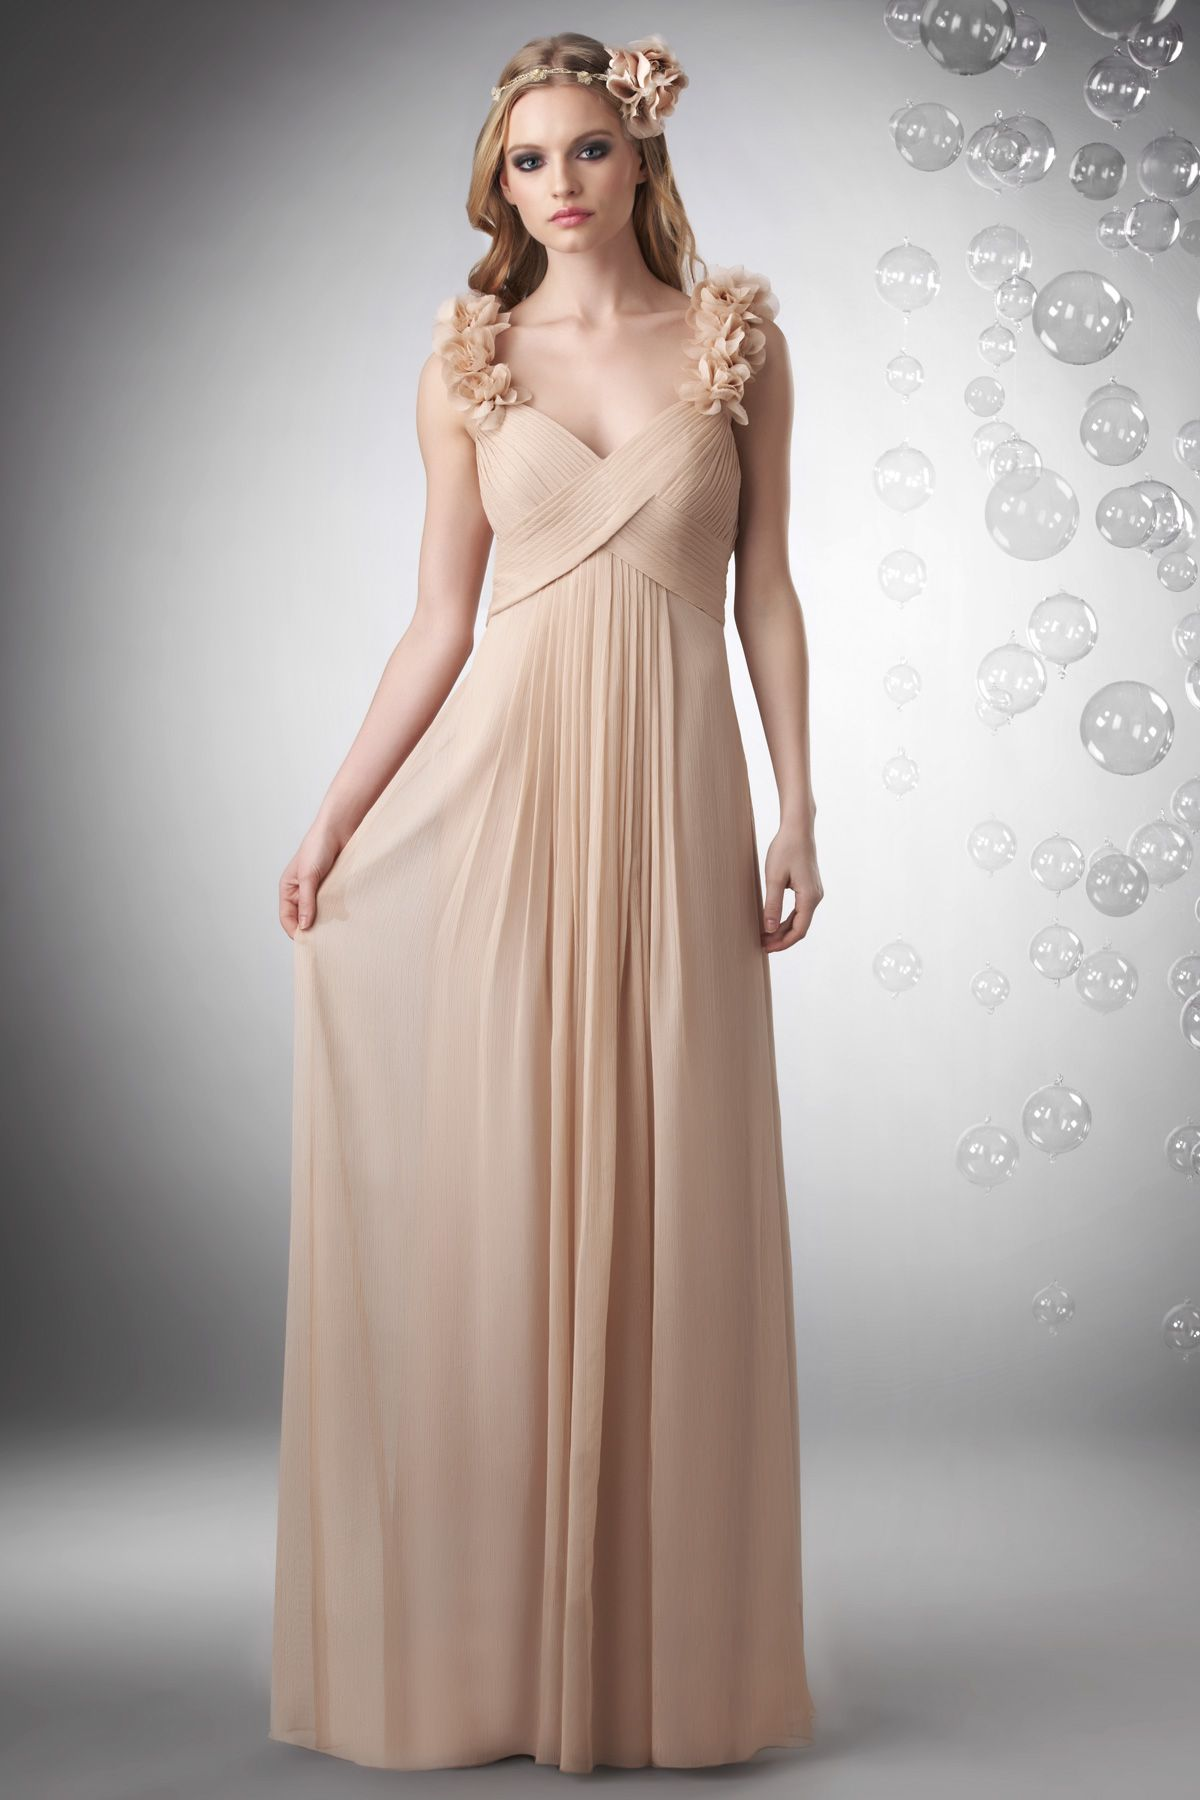 Bari jay 702 is so dainty with floral accents this long chiffon bari jay 702 is so dainty with floral accents this long chiffon bridesmaid dress is ombrellifo Choice Image